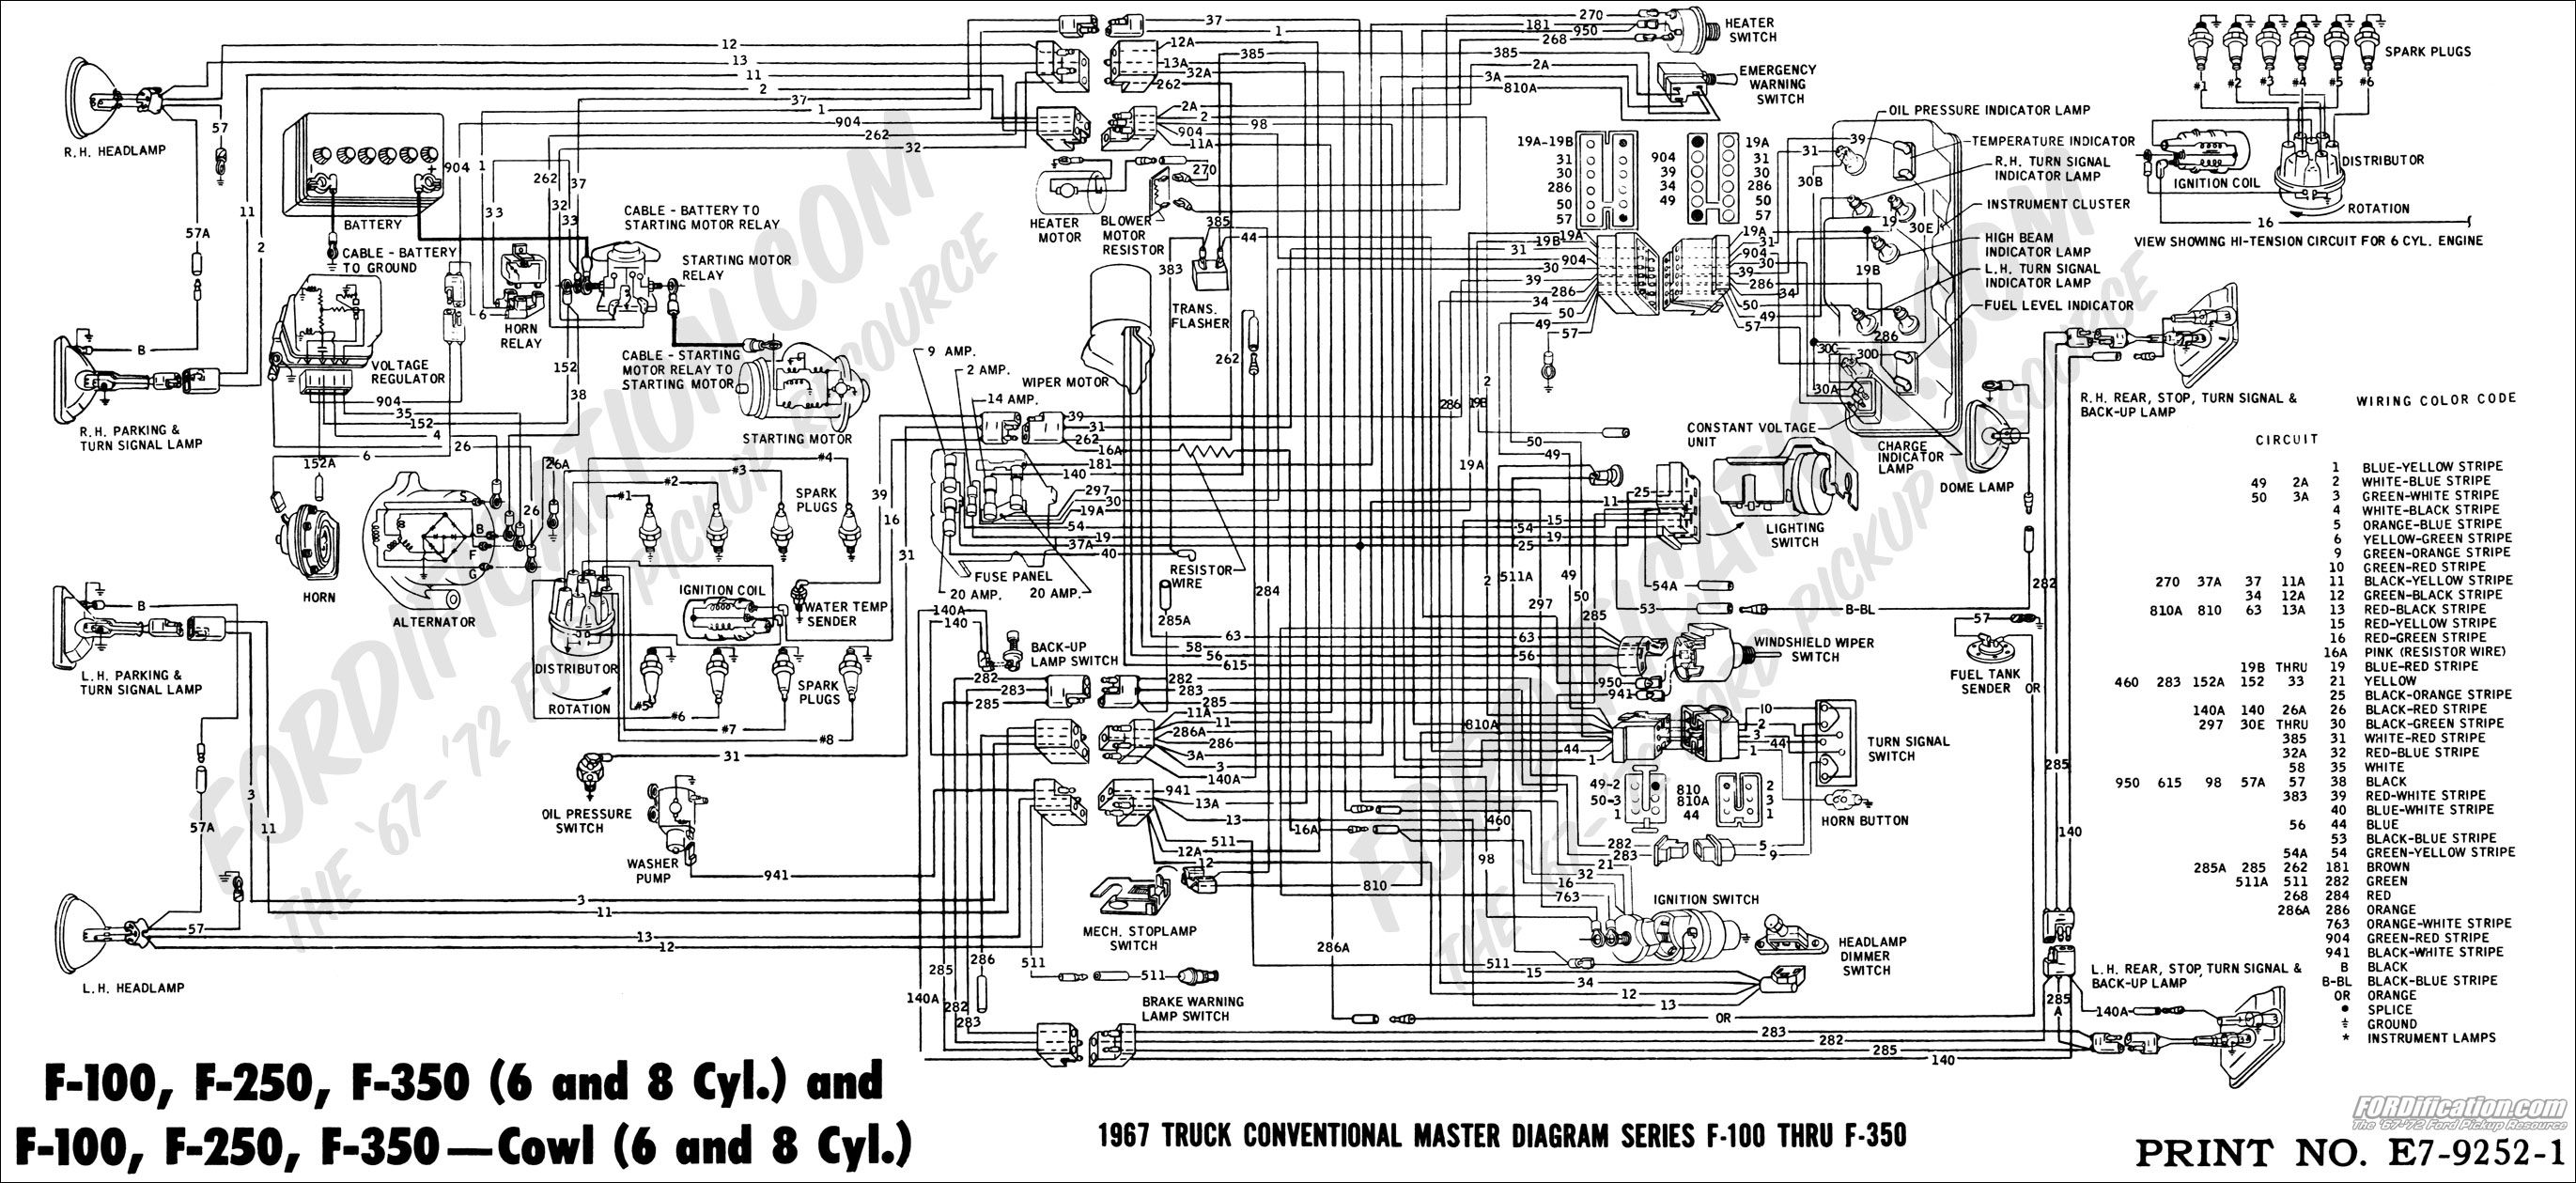 8e608320d8e6c71ff5bbdb2efdd7ada1 ford truck technical drawings and schematics section h wiring Ford E 350 Wiring Diagrams at edmiracle.co